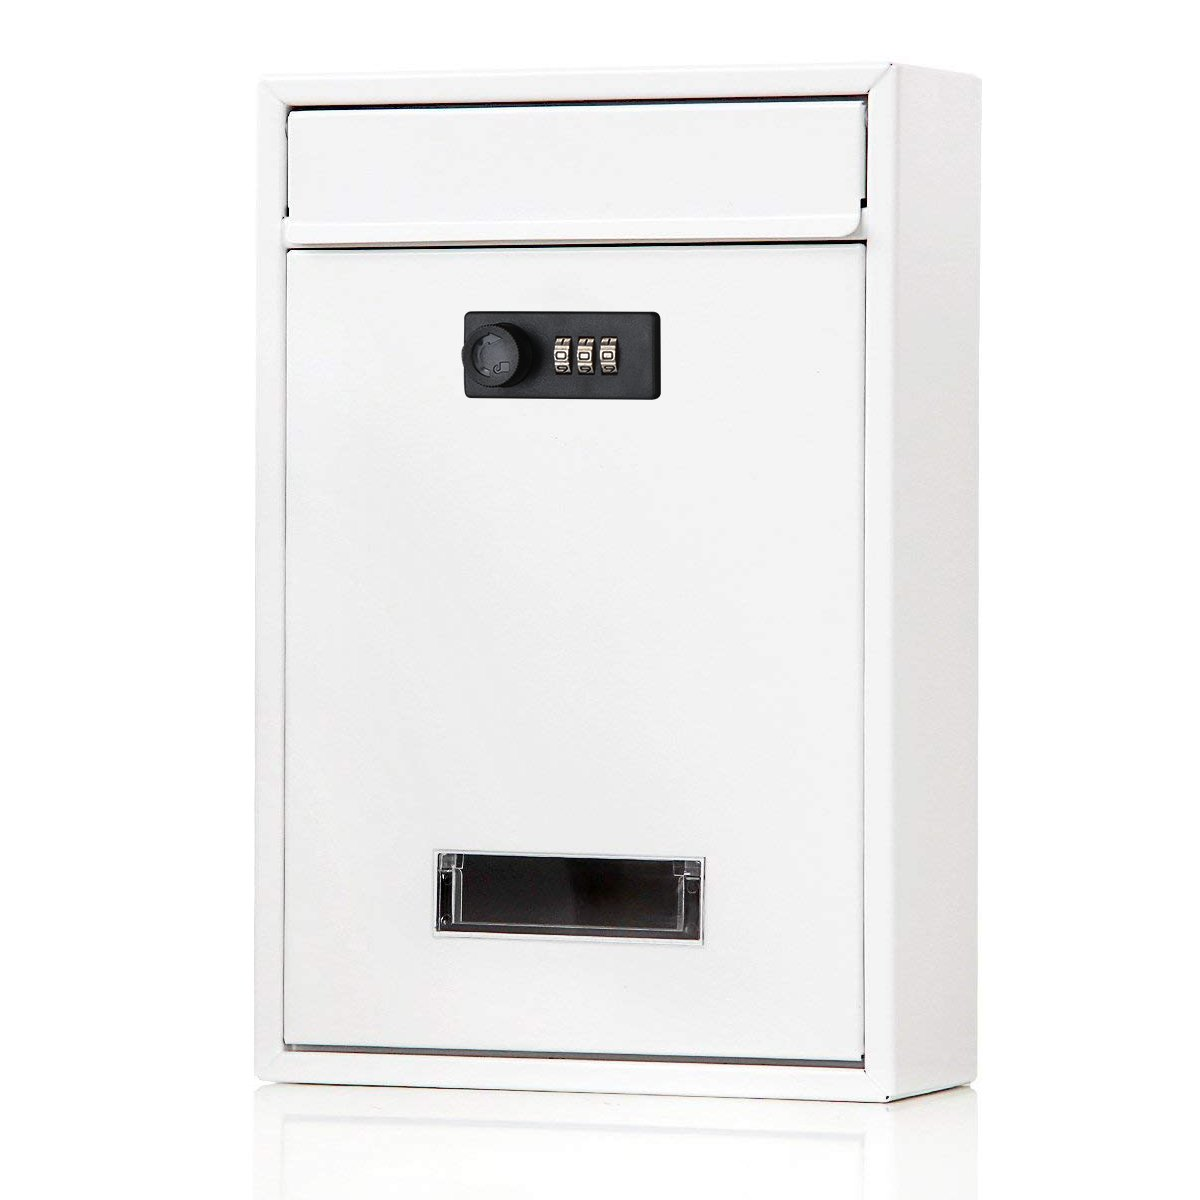 Locking mailbox wall mounted vertical– Jssmst mail boxes with combination lock large capacity, 12.6 x 8.46 x 3.35 Inch, white,SM-0604CM